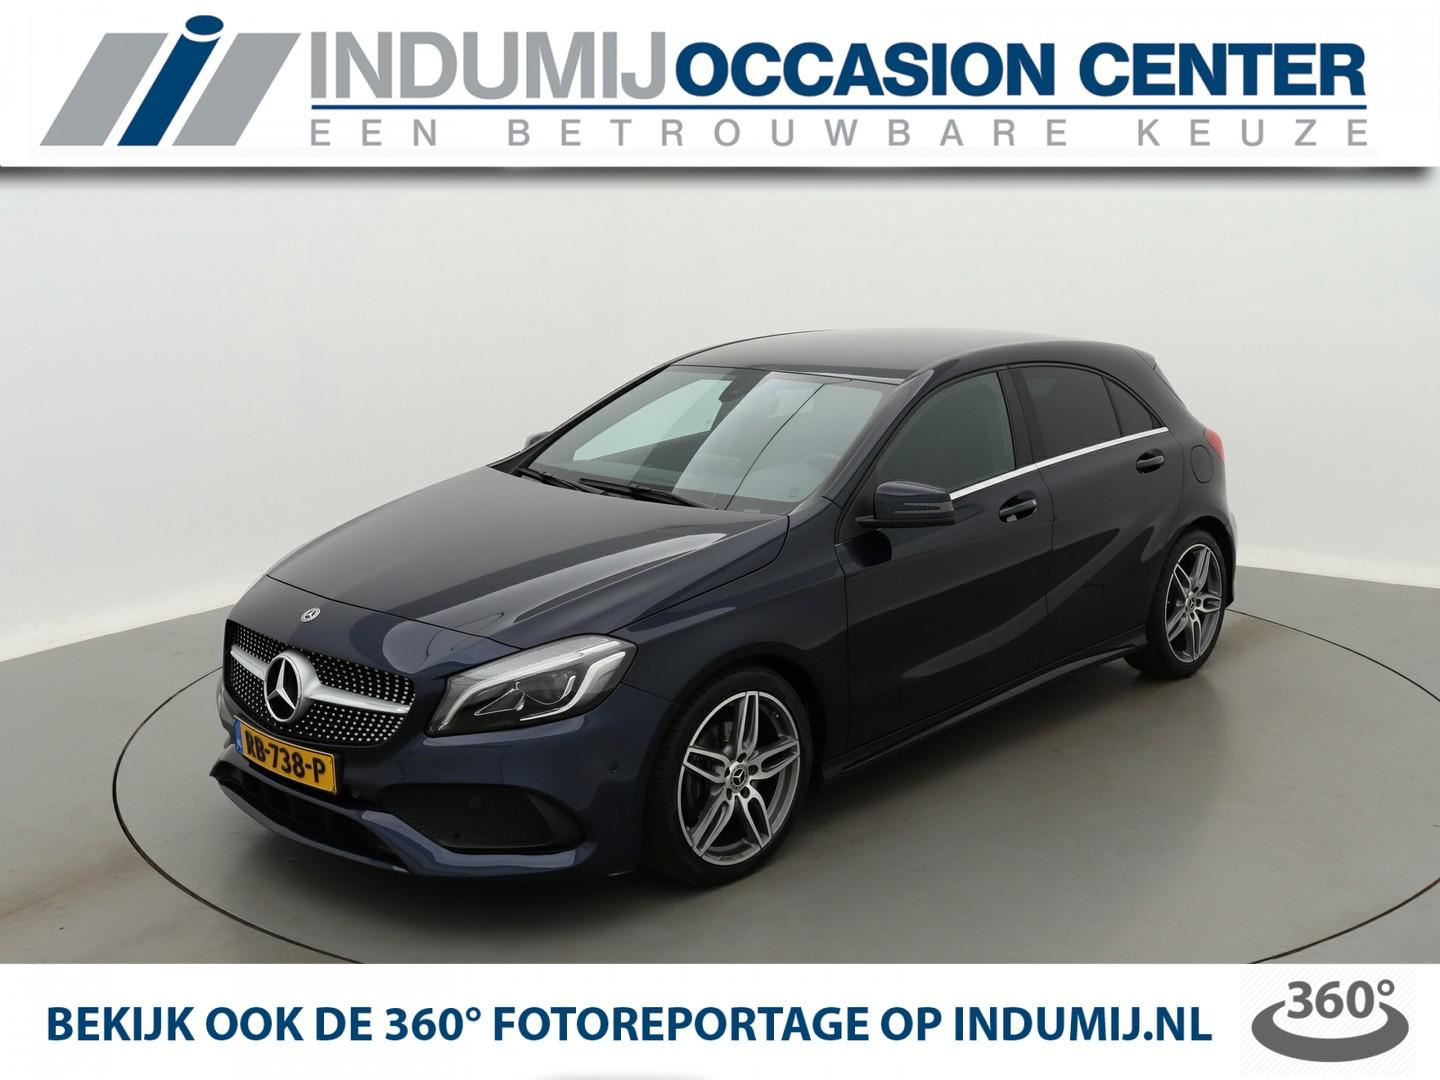 """Mercedes-benz A-klasse 180 business solution amg automaat // camera / amg styling / 18"""" inch / navi"""